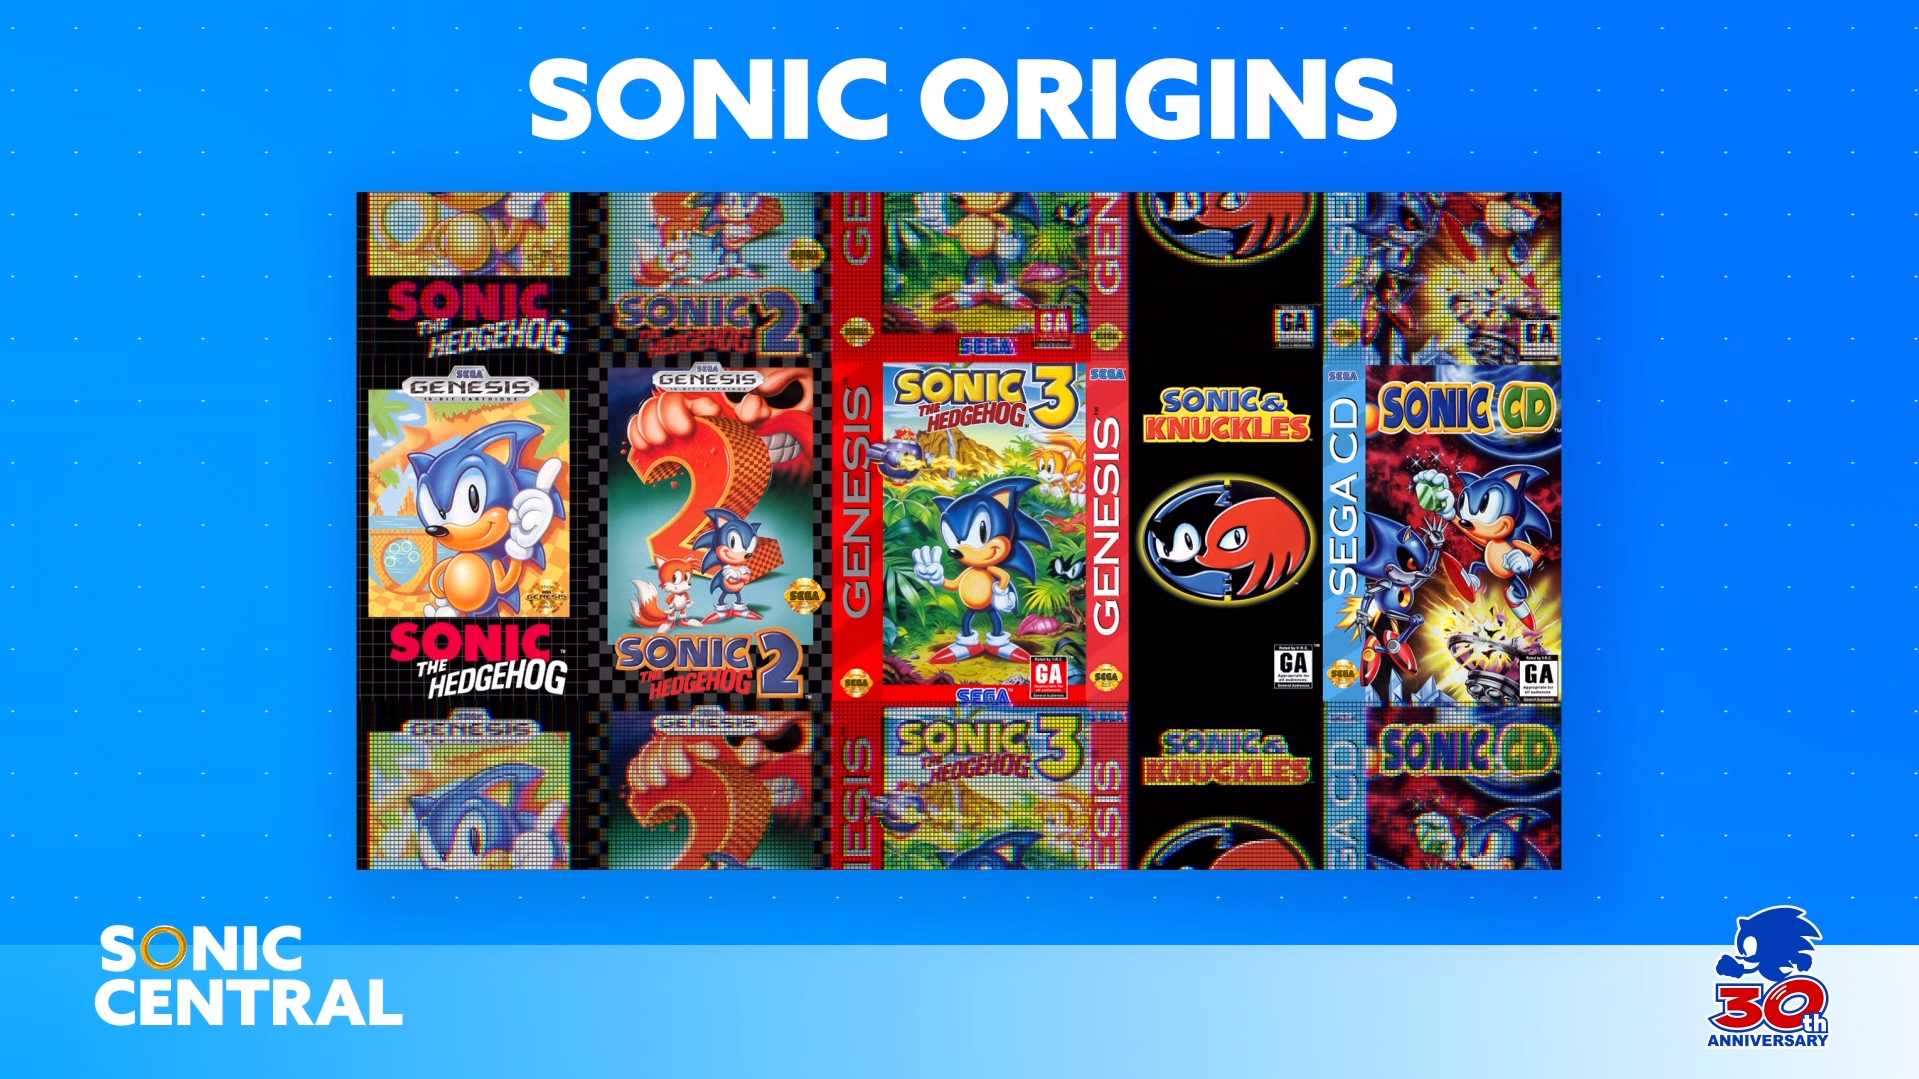 Sonic Central Classic Games